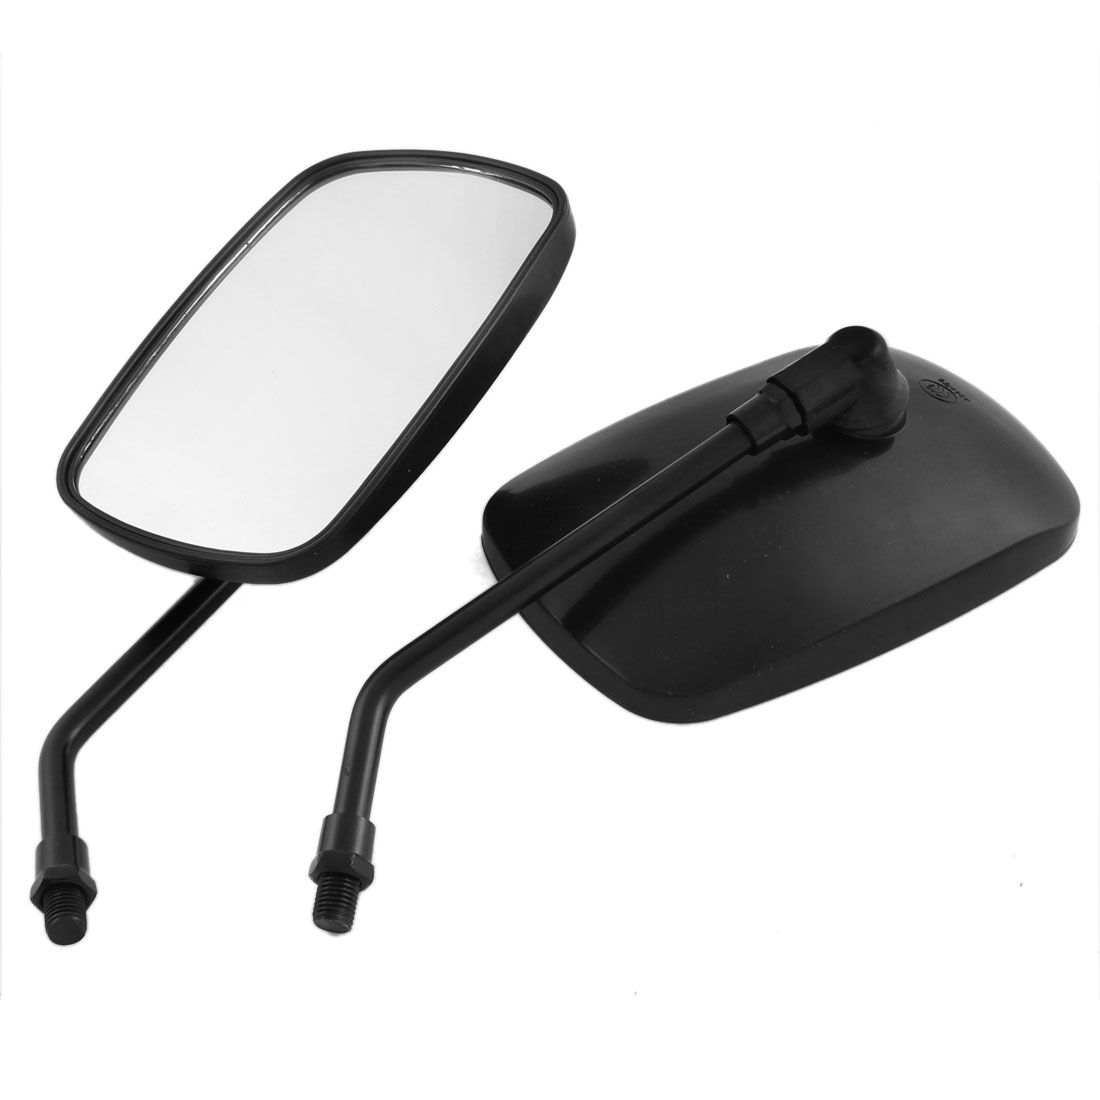 2 Pcs Adjustable Rectangle Rearview Blind Spot Mirrors Black for Motorcycle